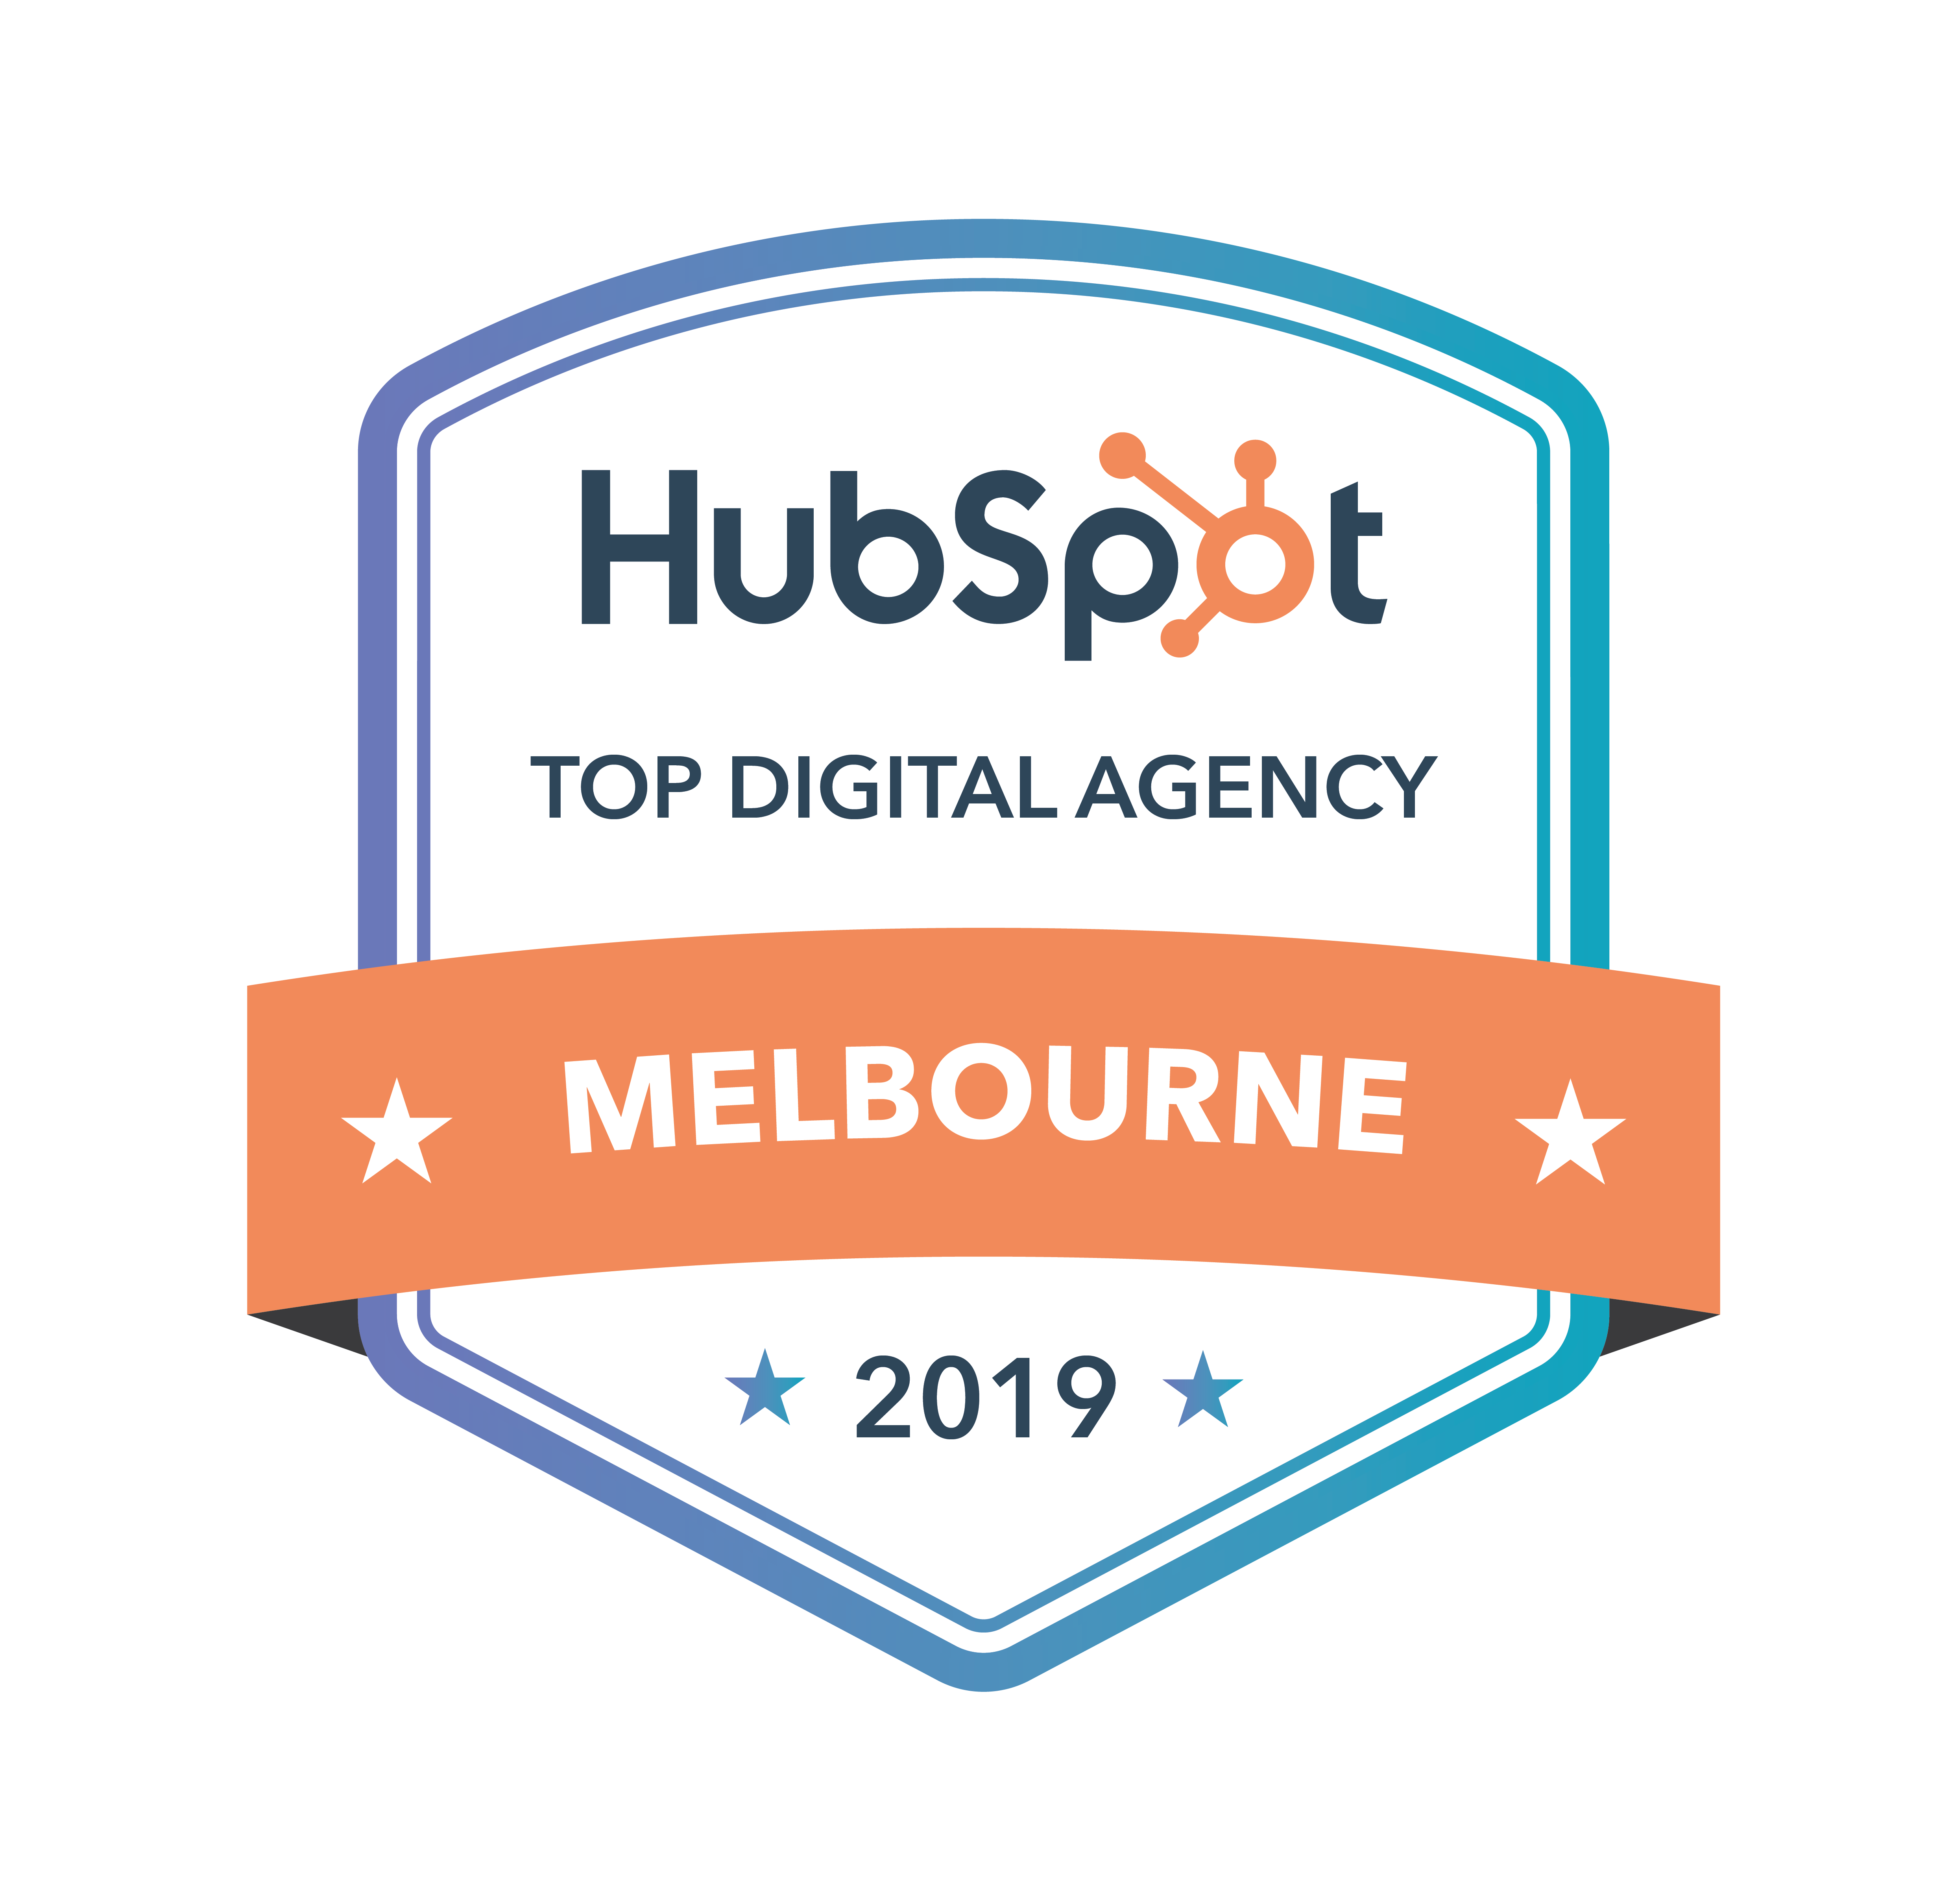 See how we reank in the top digital agencys in Melbourne